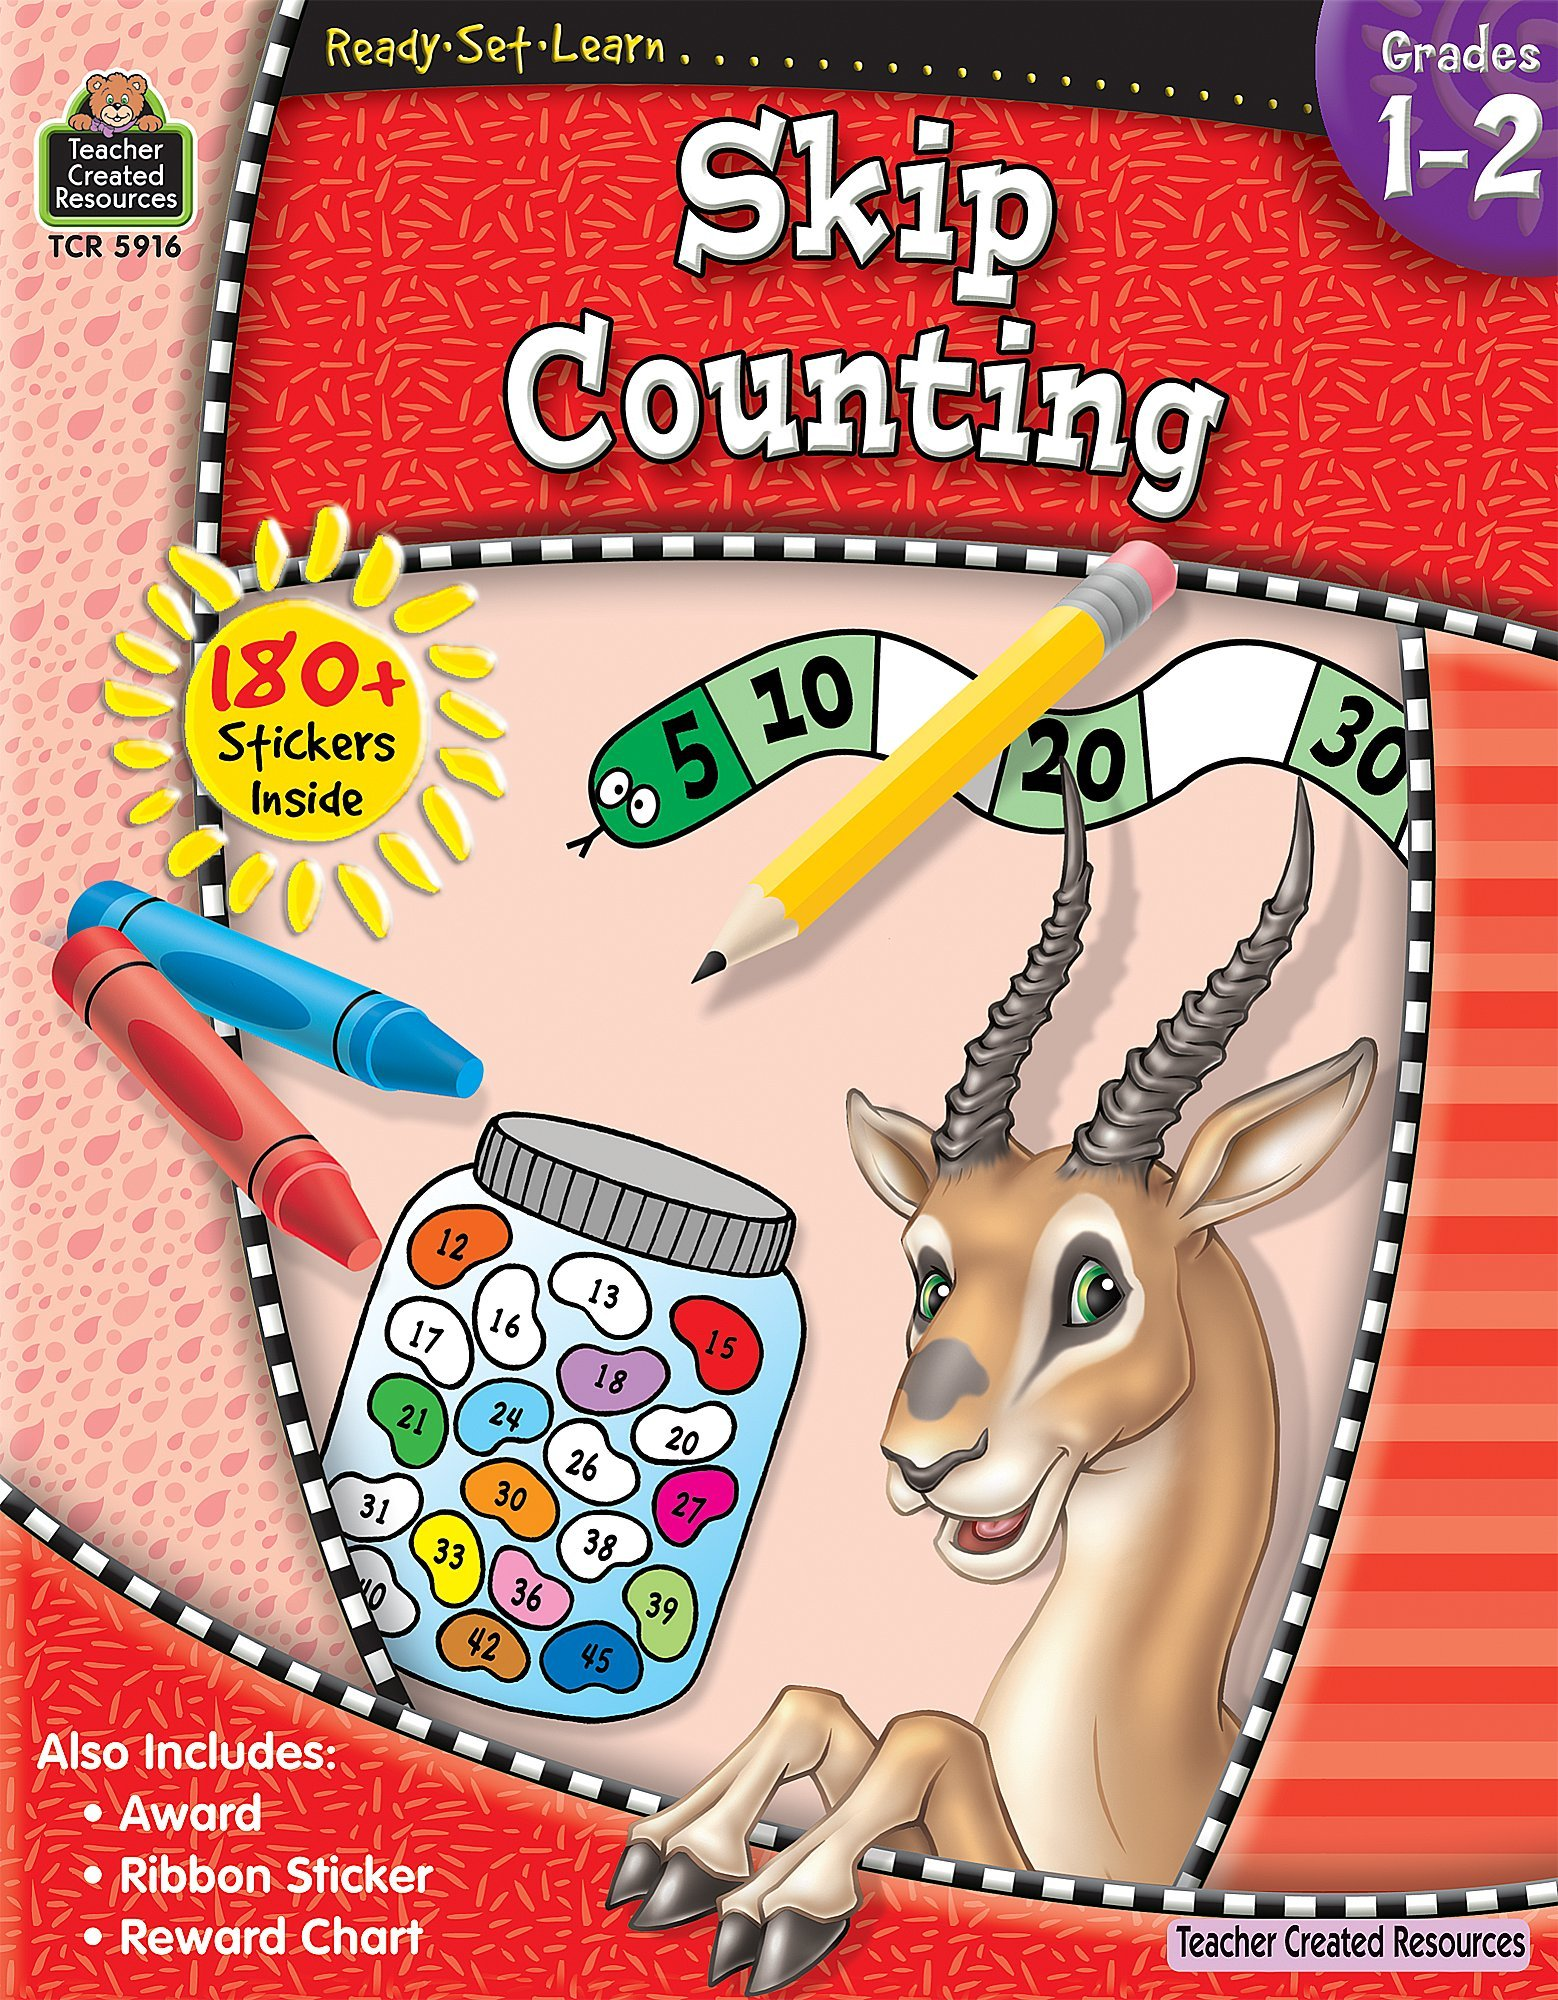 Ready-Set-Learn: Skip Counting Grd 1-2 Paperback – Jun 30 2009 Teacher Created Resources 1420659162 TCR5916 Armed Forces